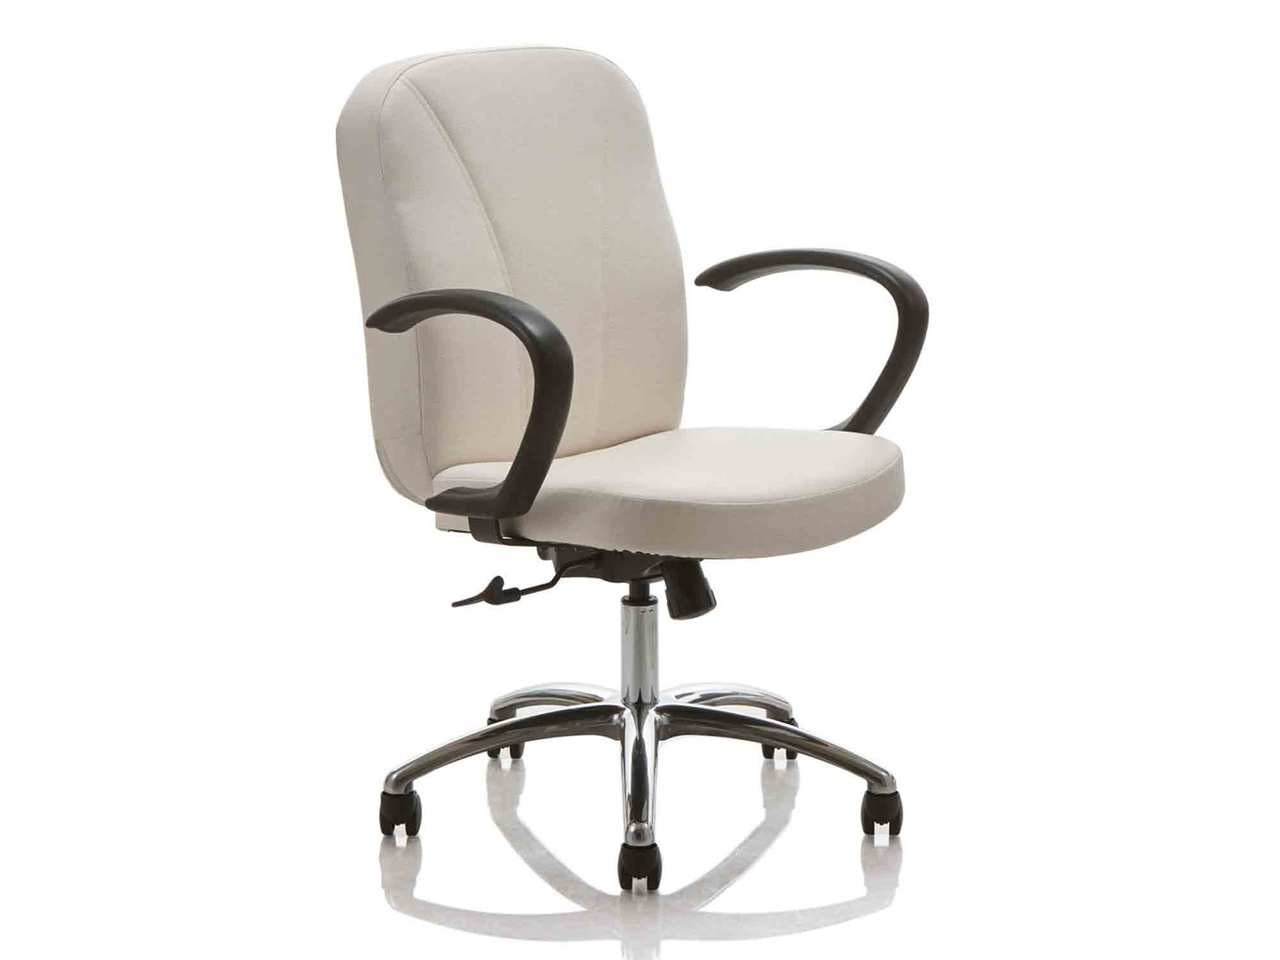 united chair medical stool black covers with silver sash venus office furniture warehouse image 1